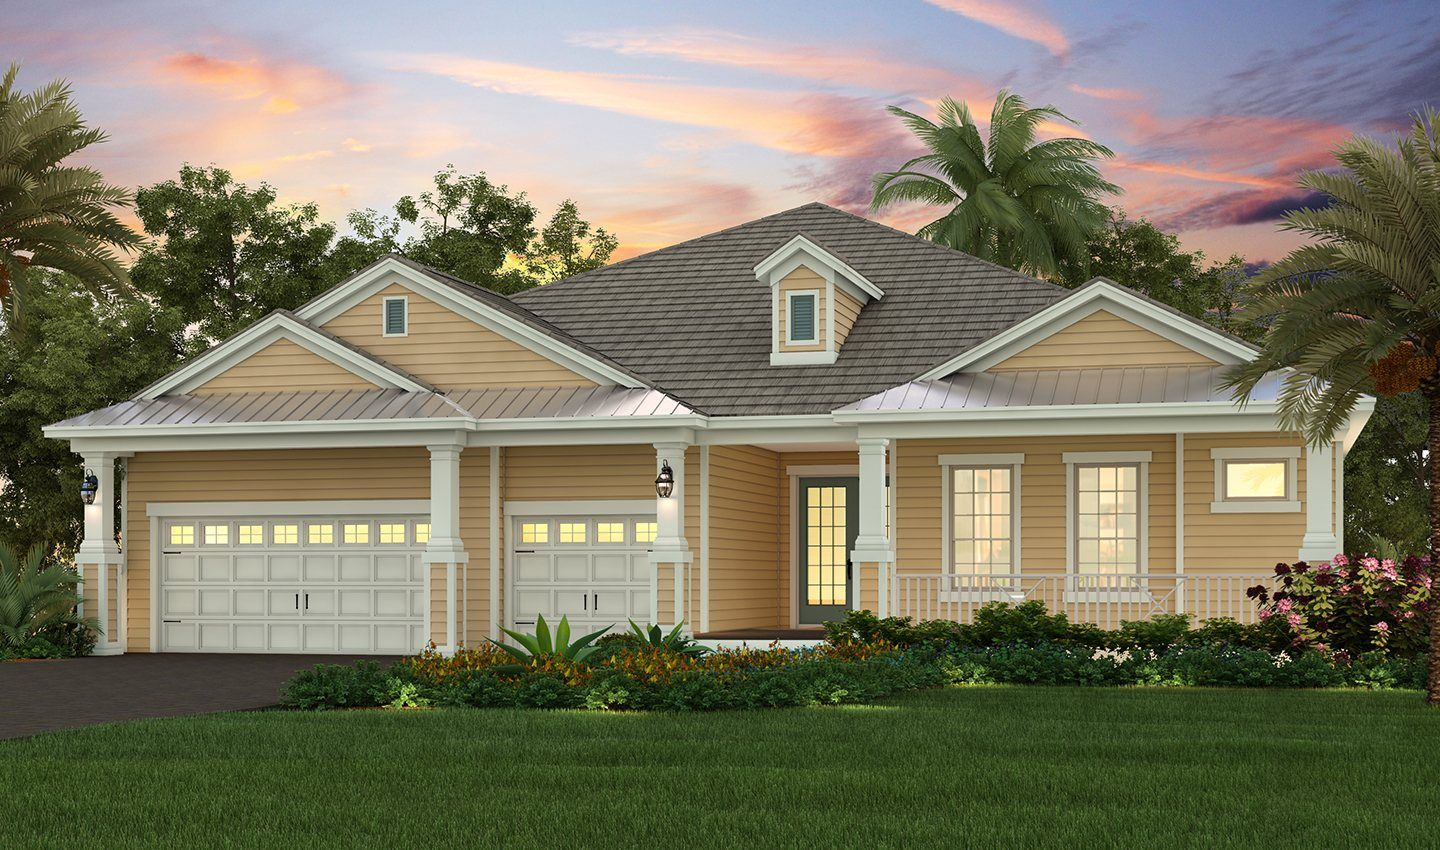 Single Family for Active at Mirabay - Palm Beach 713 Manns Harbor Drive Apollo Beach, Florida 33572 United States